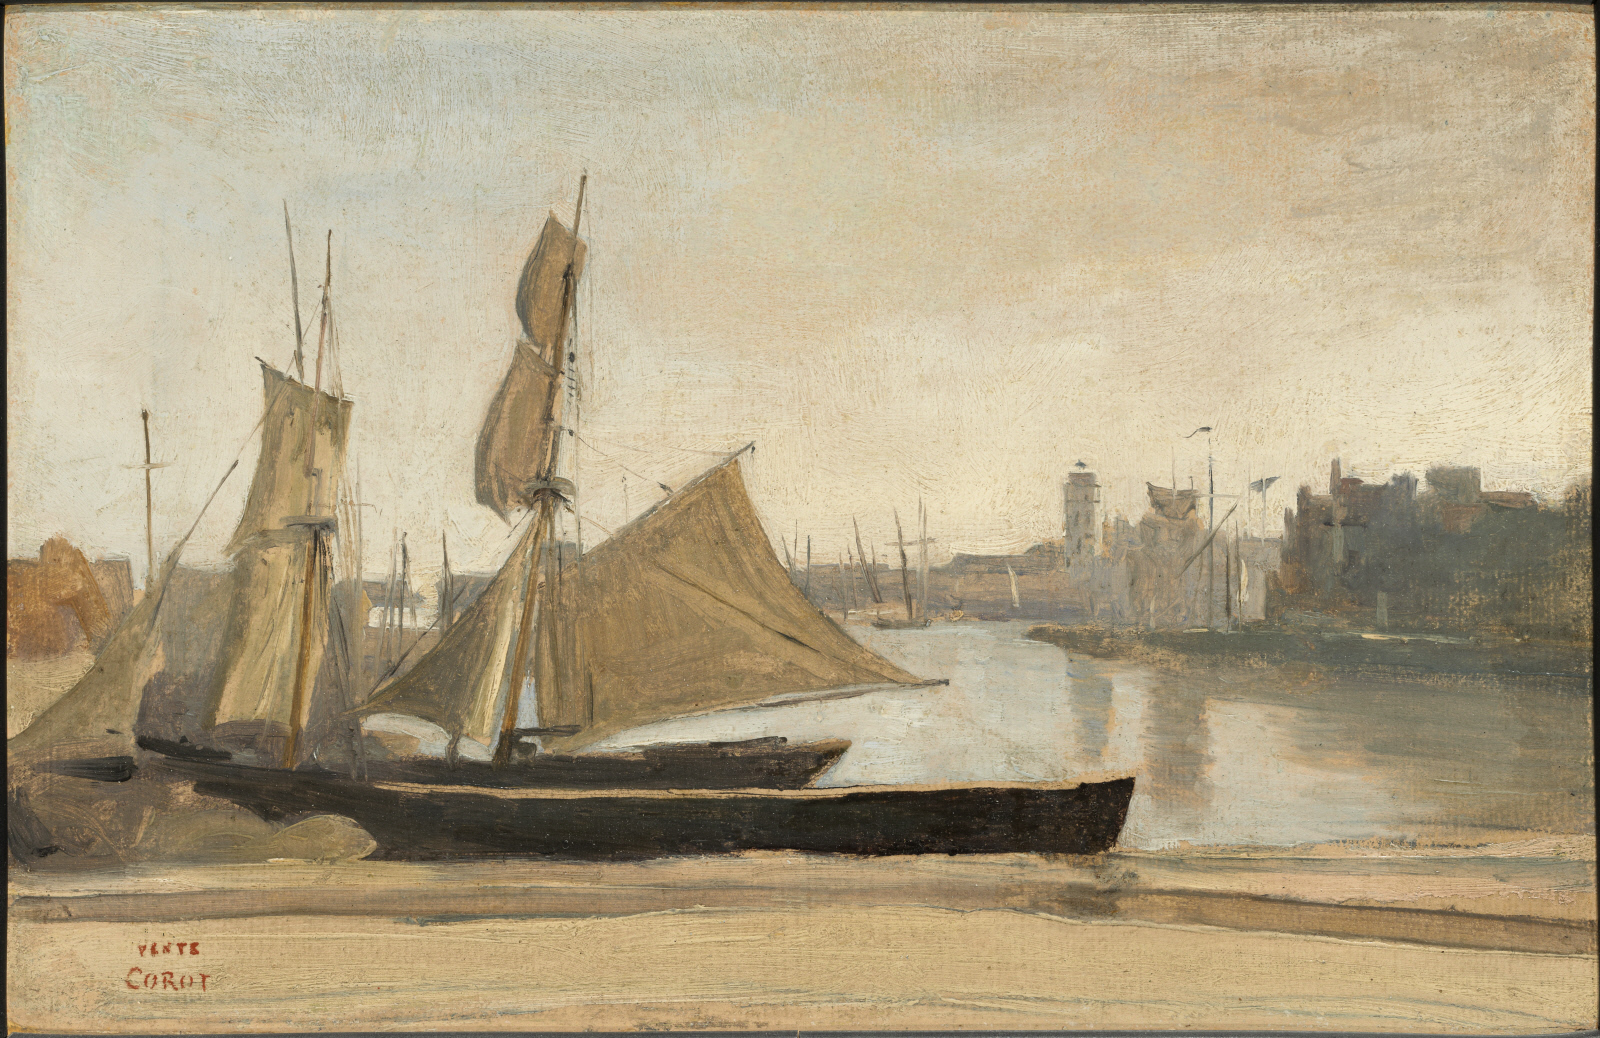 An Jean-Baptiste Camille Corot painting of a French Schooner boat